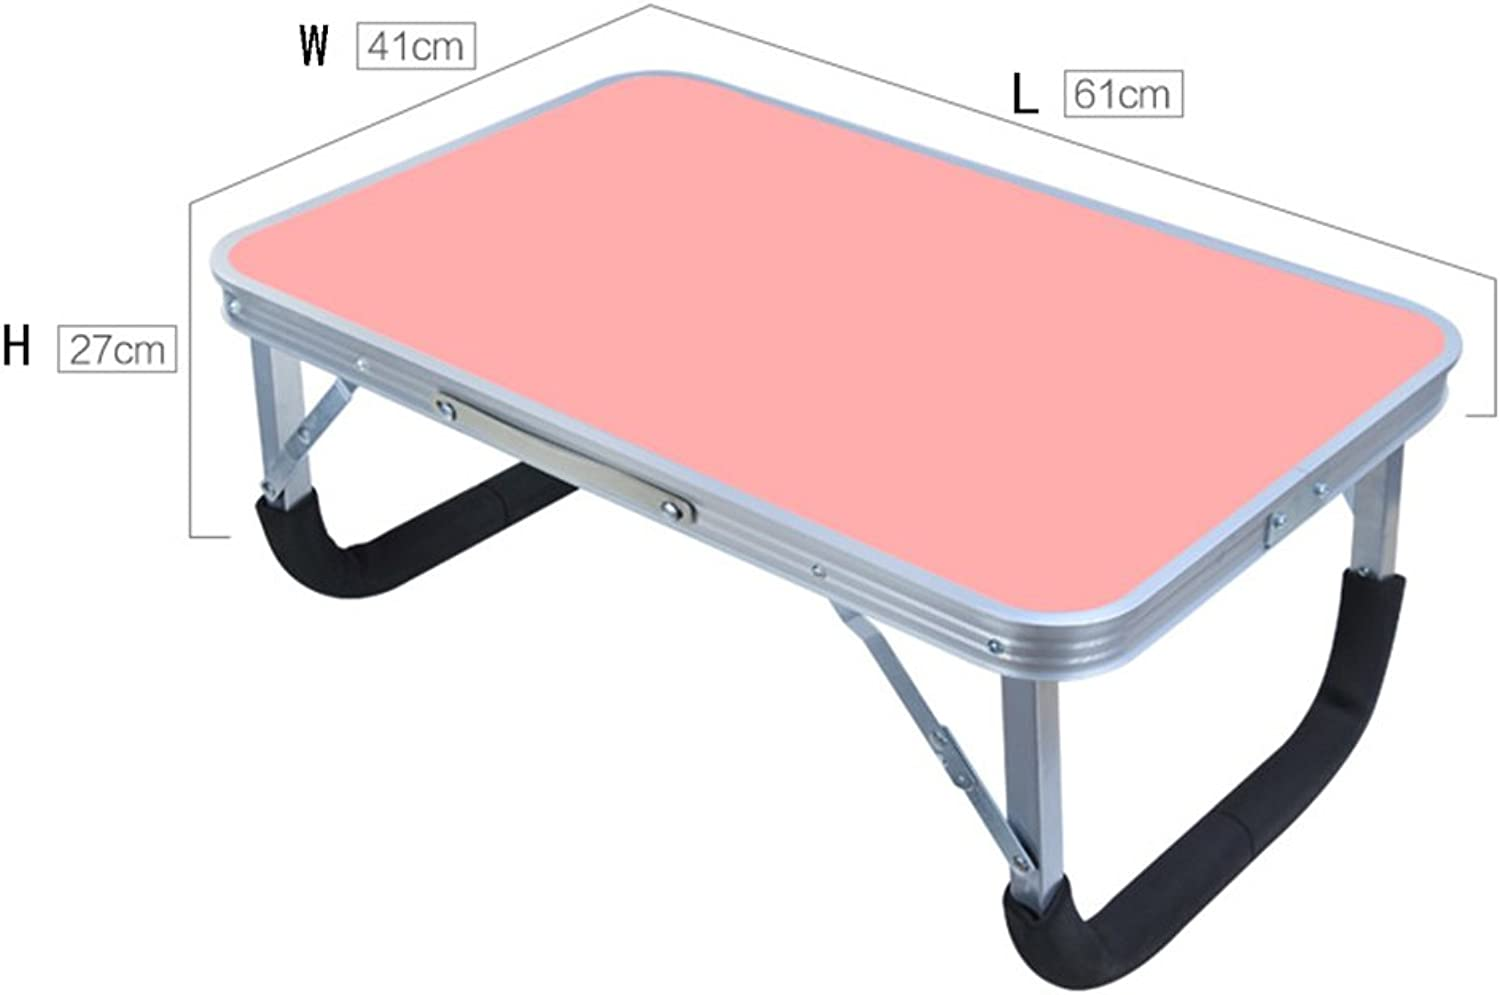 XUERUI Folding Tables Folding Computer Desk Simple Desk Desk Bedroom Small Desk Simple Student Dorm Bed Table